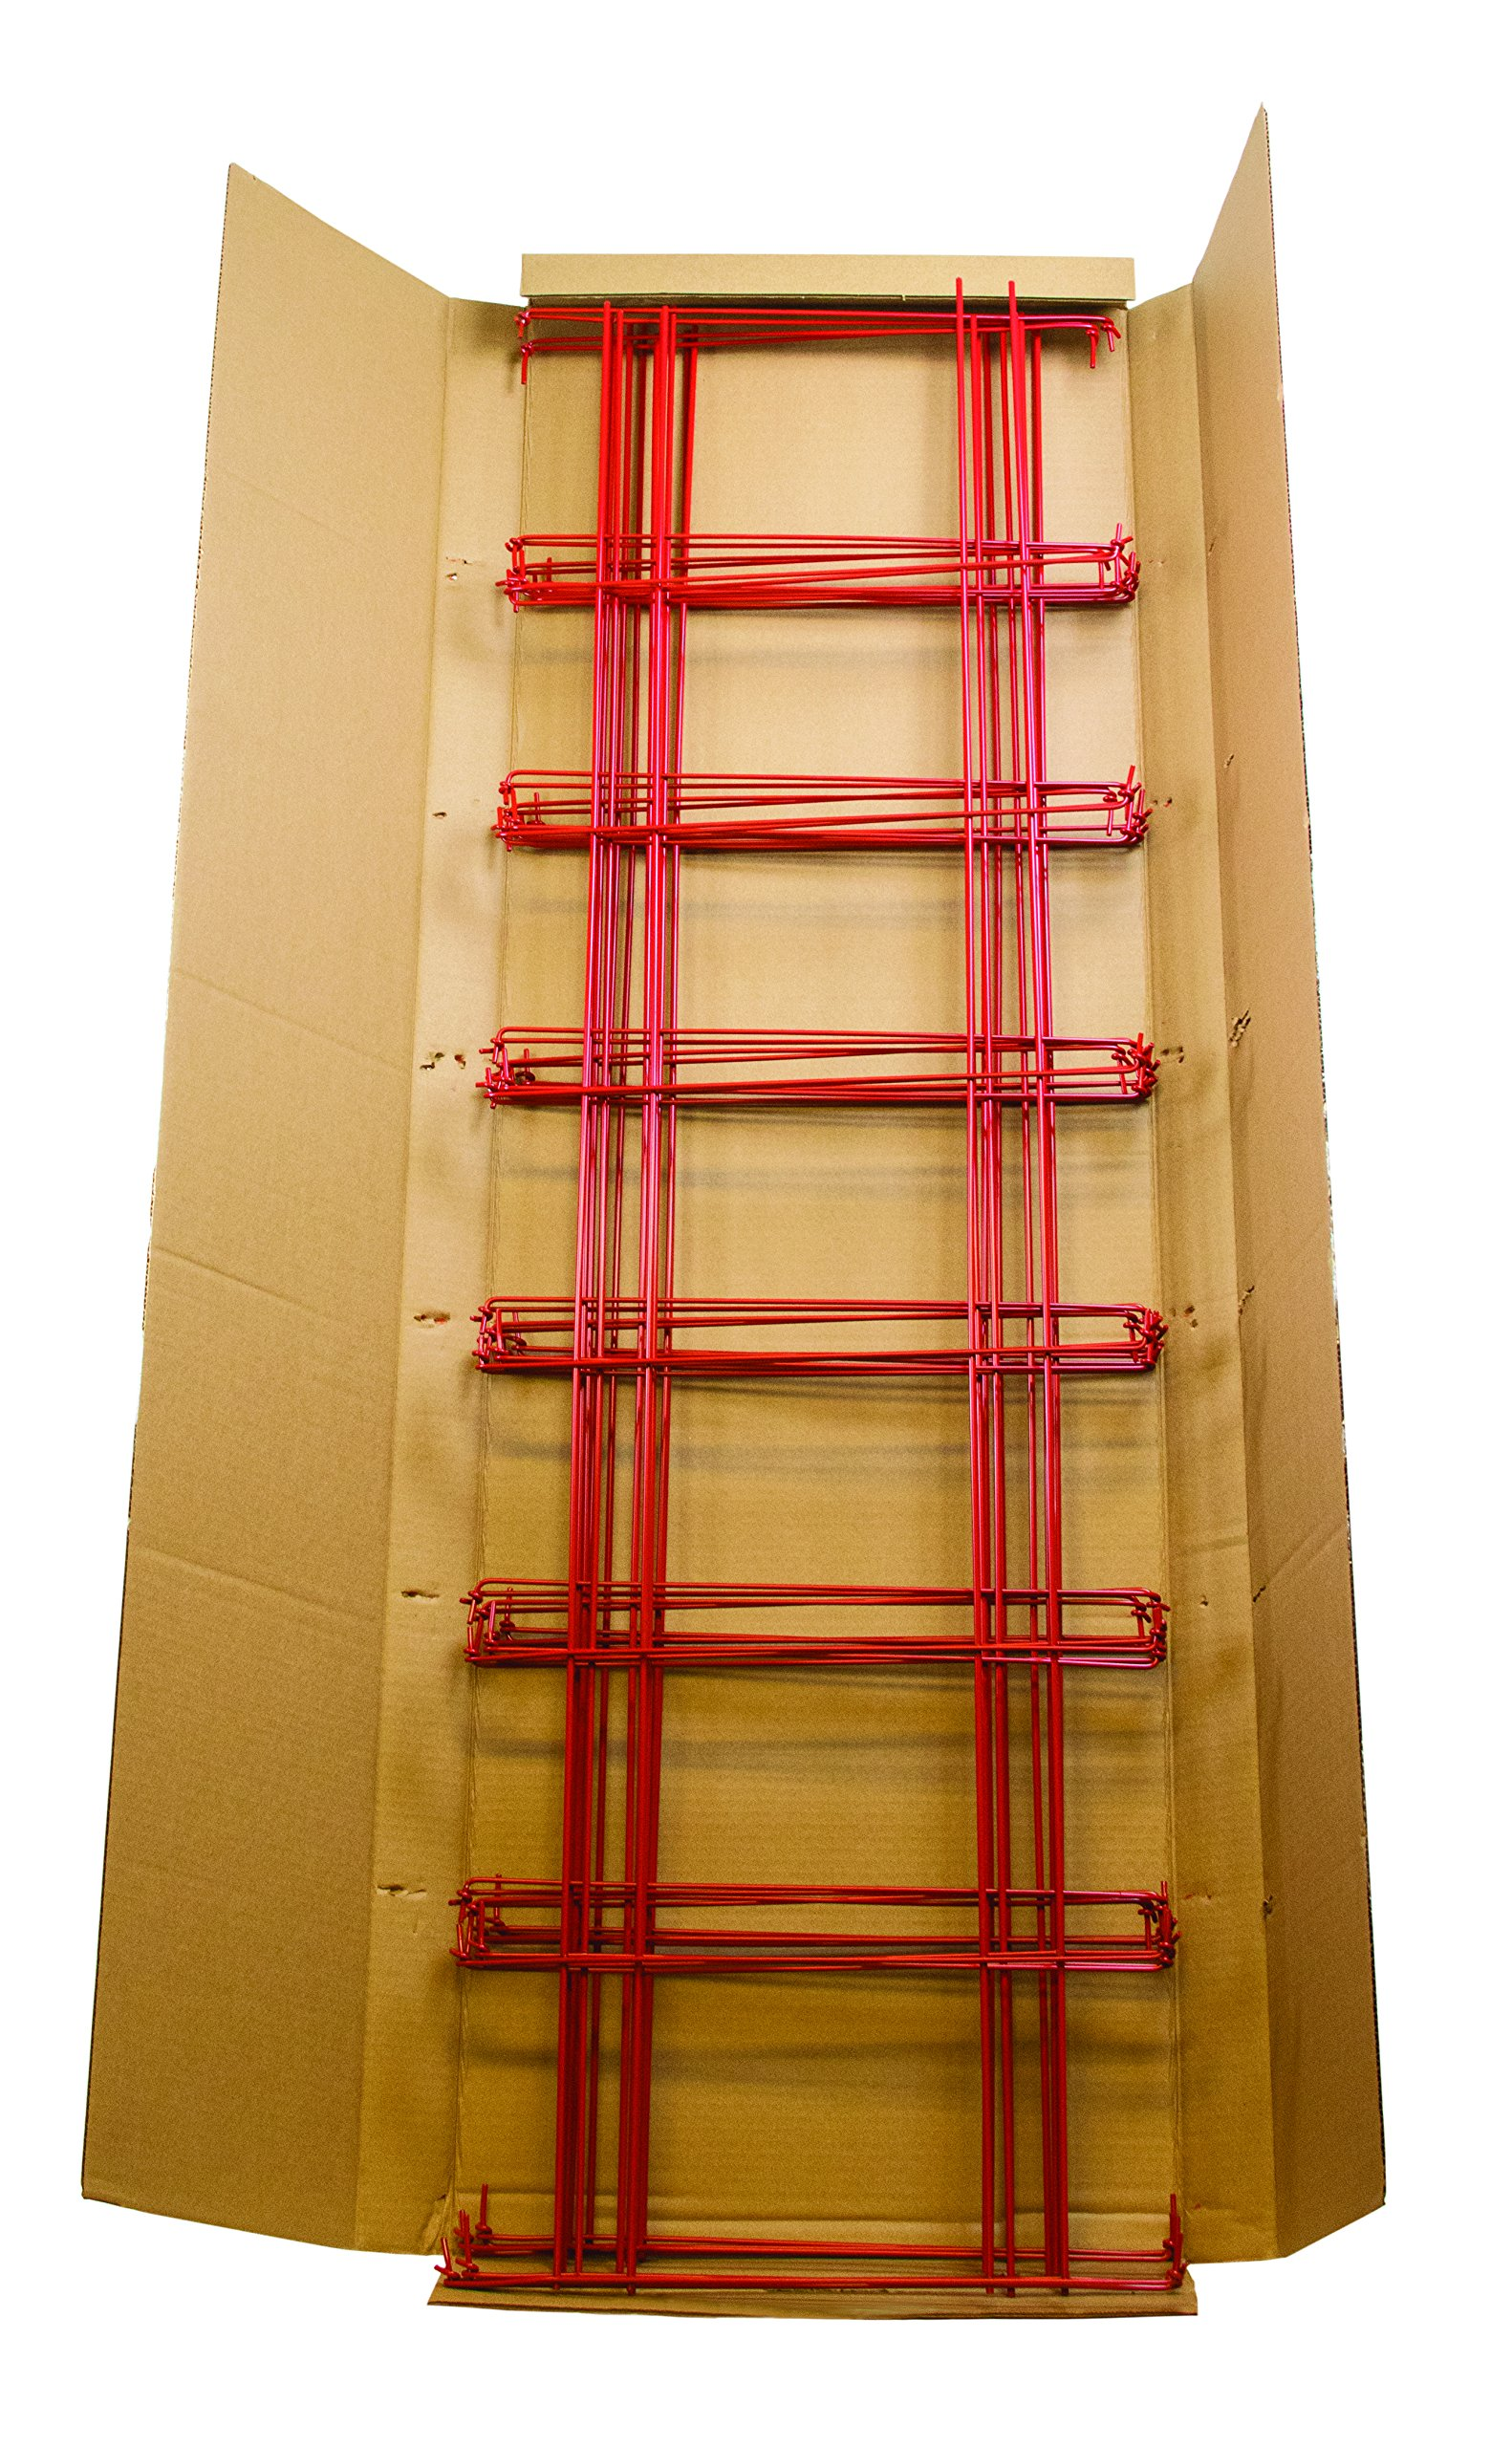 Burpee Extra Large Professional Tomato Cage 18x18x58, Heavy Gauge, Red, MADE IN THE USA